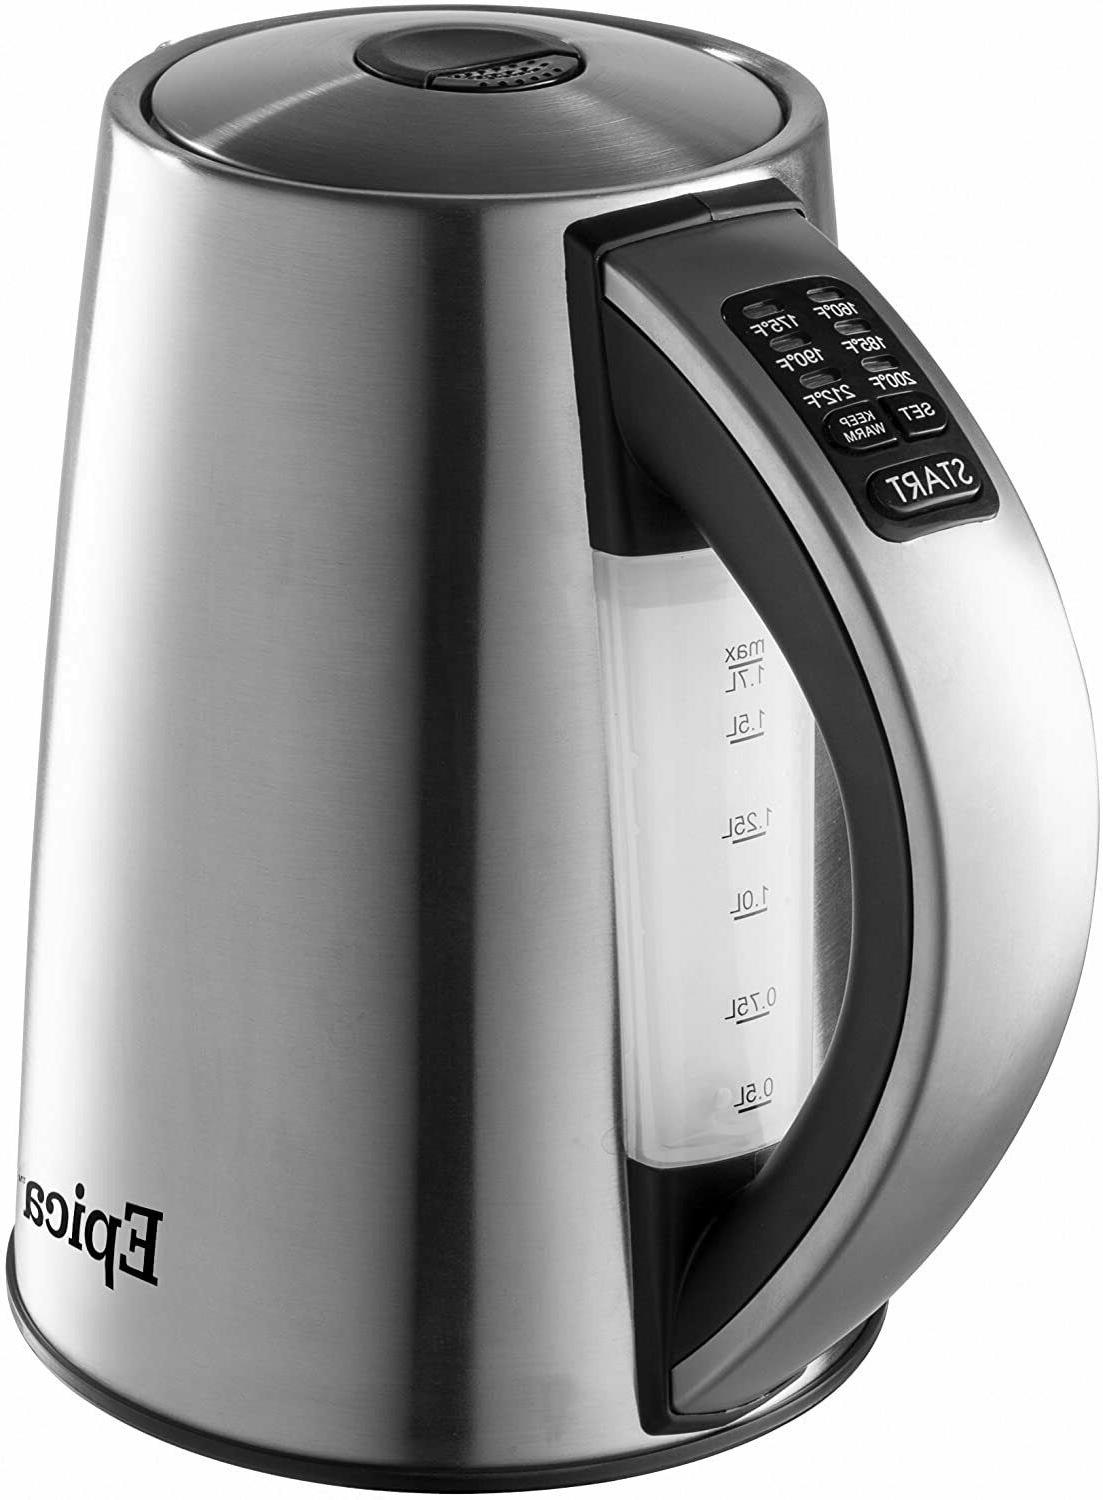 Epica 6-Temperature Variable Stainless Steel Cordless Electr